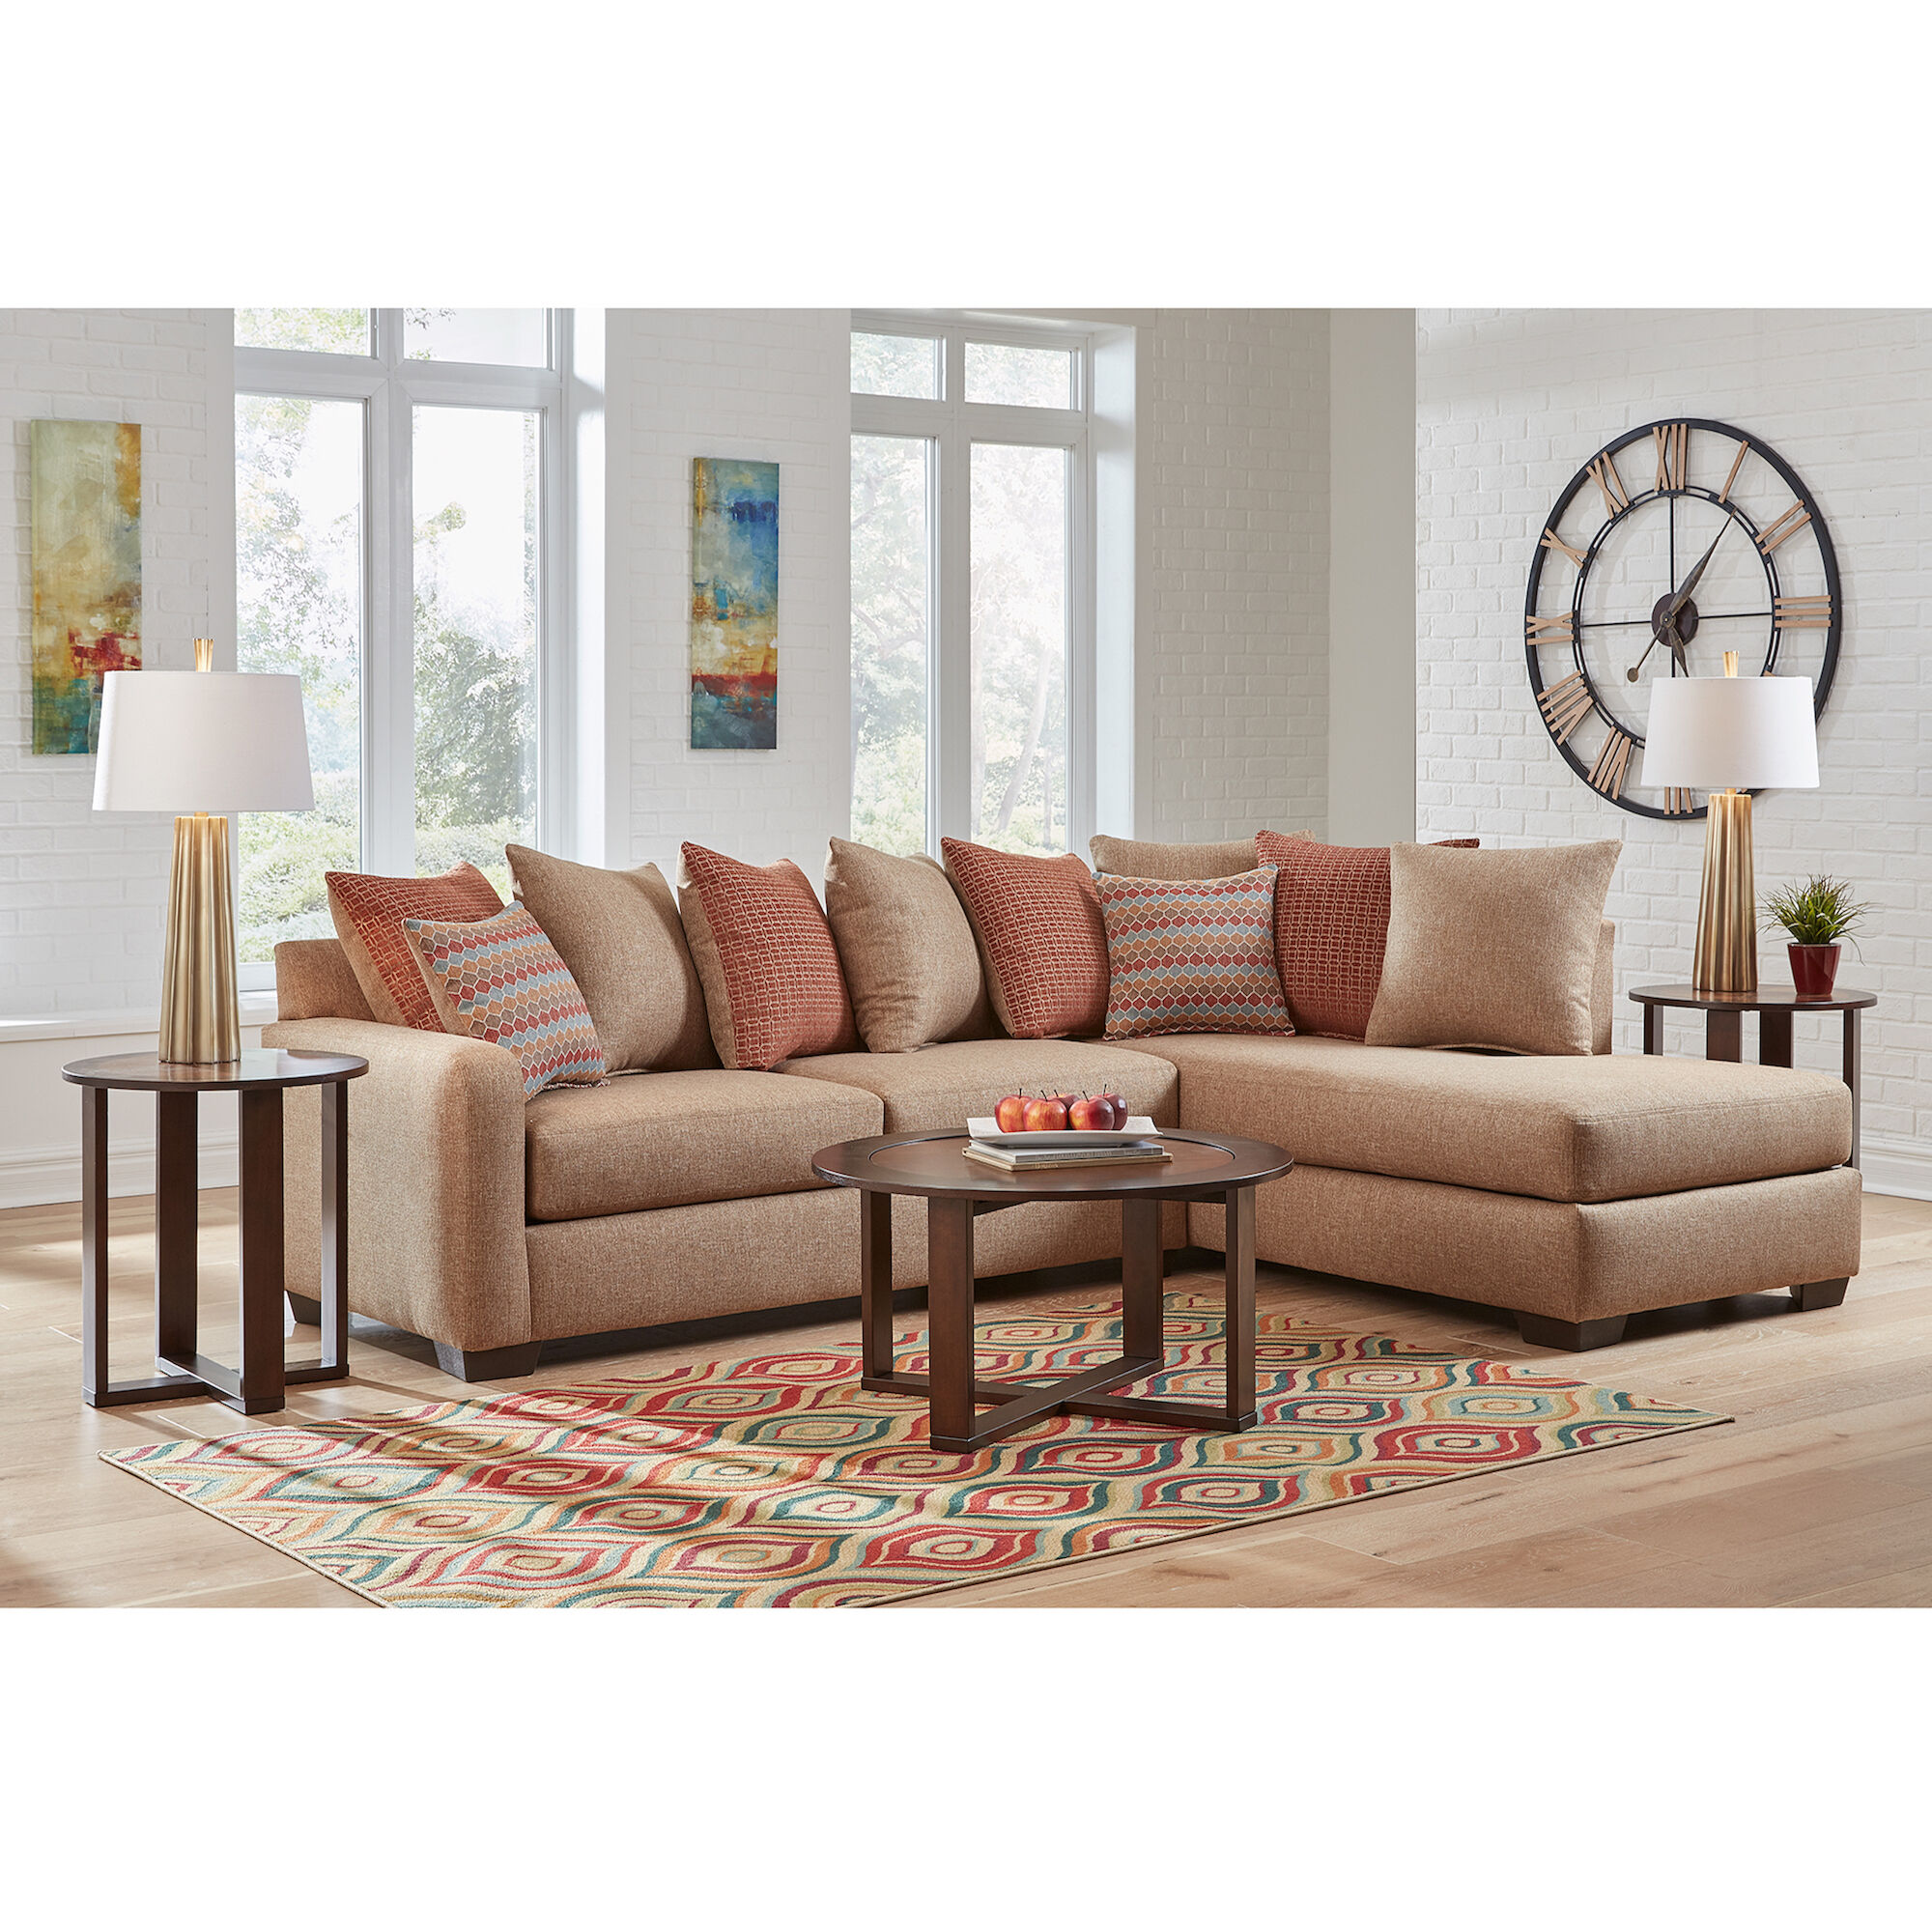 7 Piece Casablanca Living Room Collection